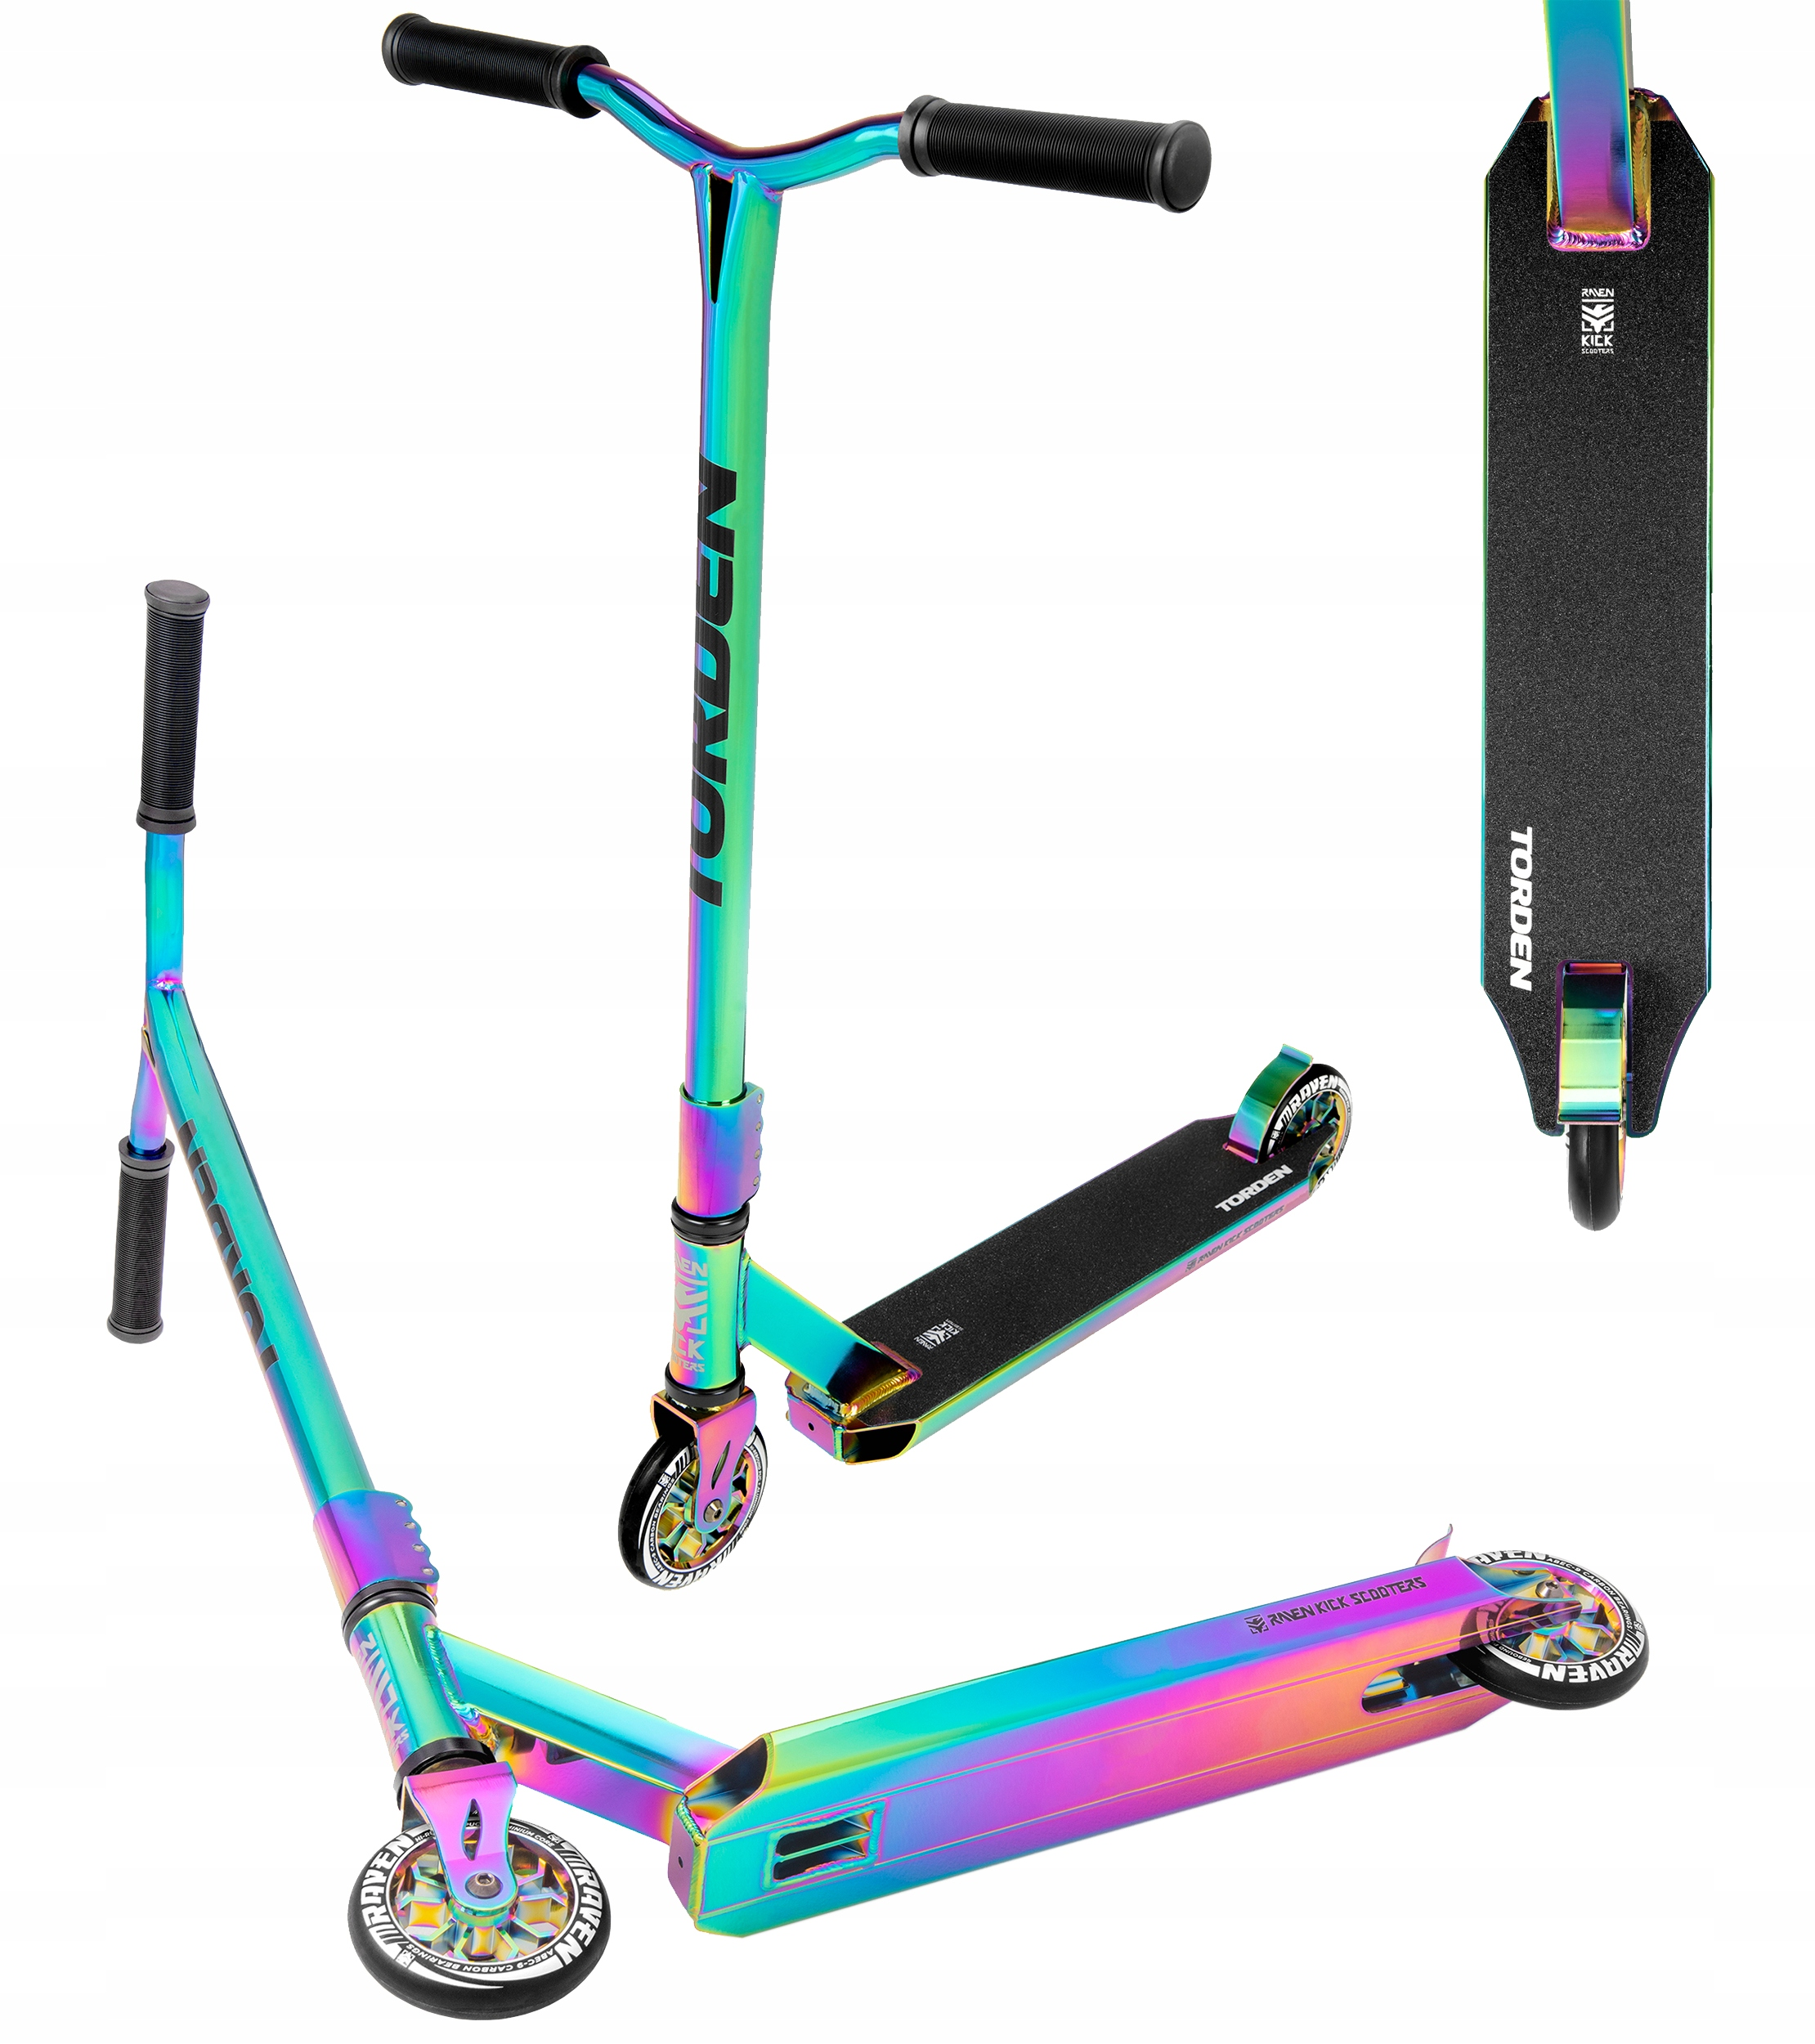 Scooter Raven Torne Neo Chrome 110mm